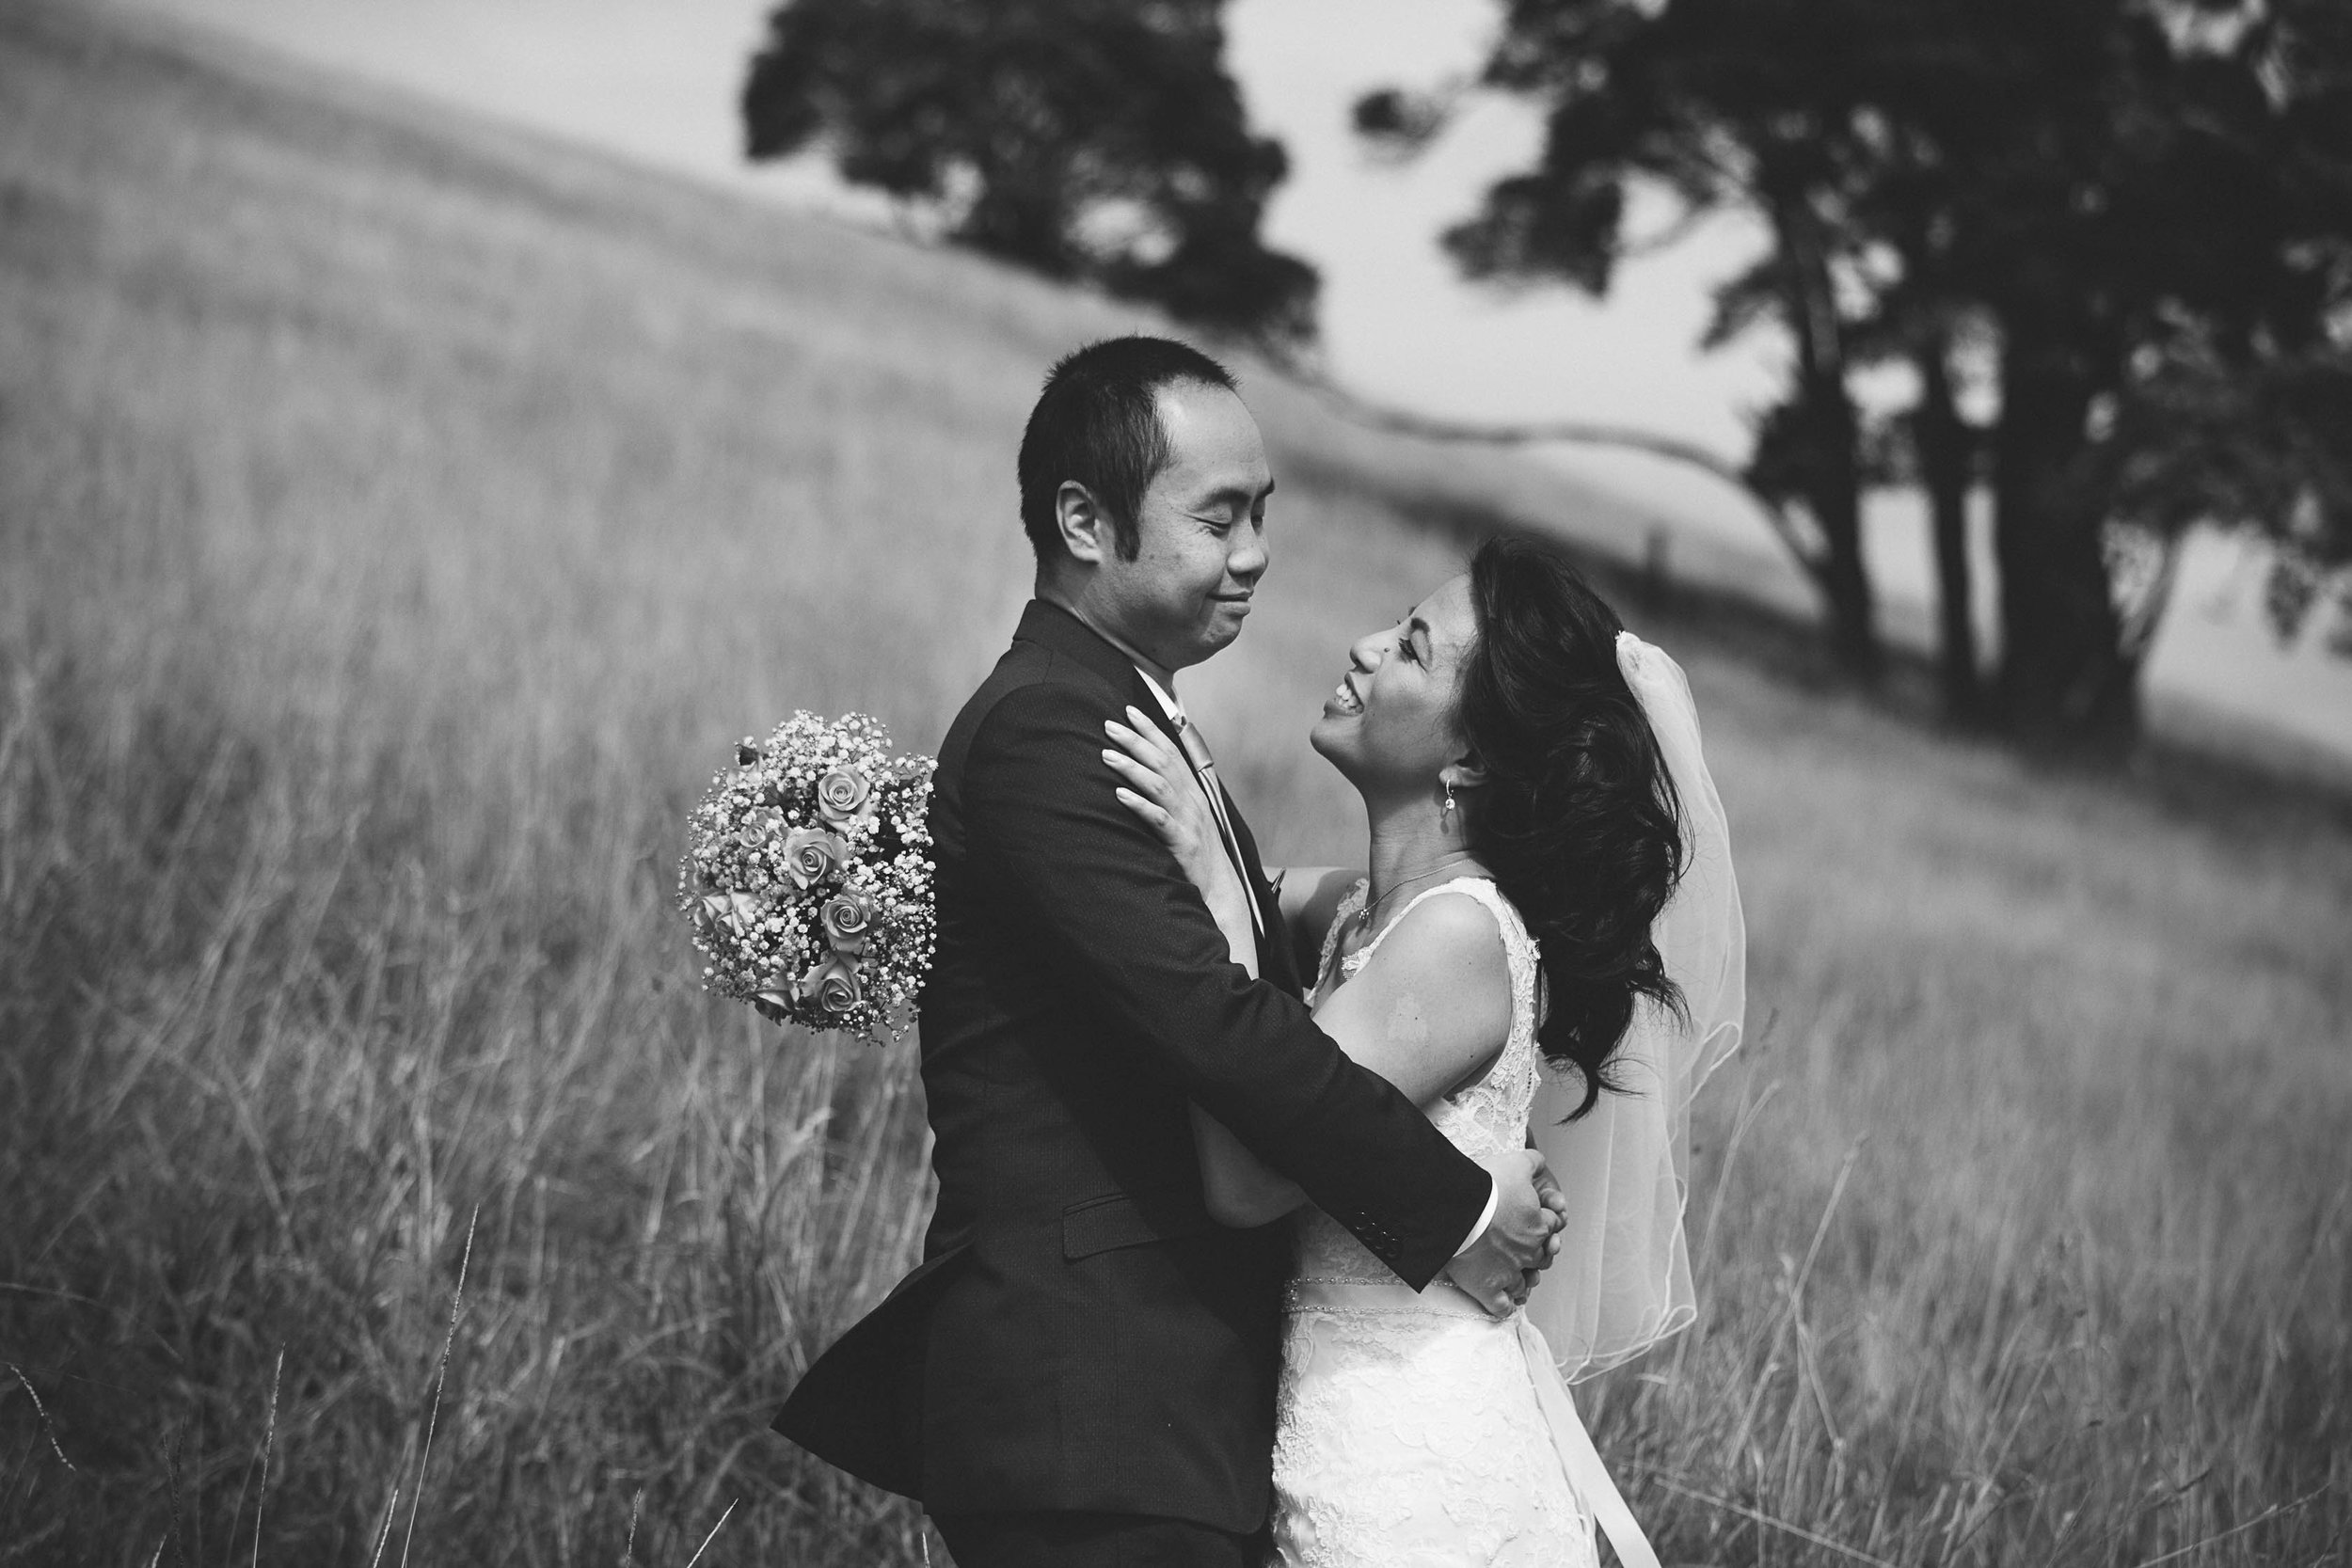 Wedding photography - black & white photo of couple hugging in field